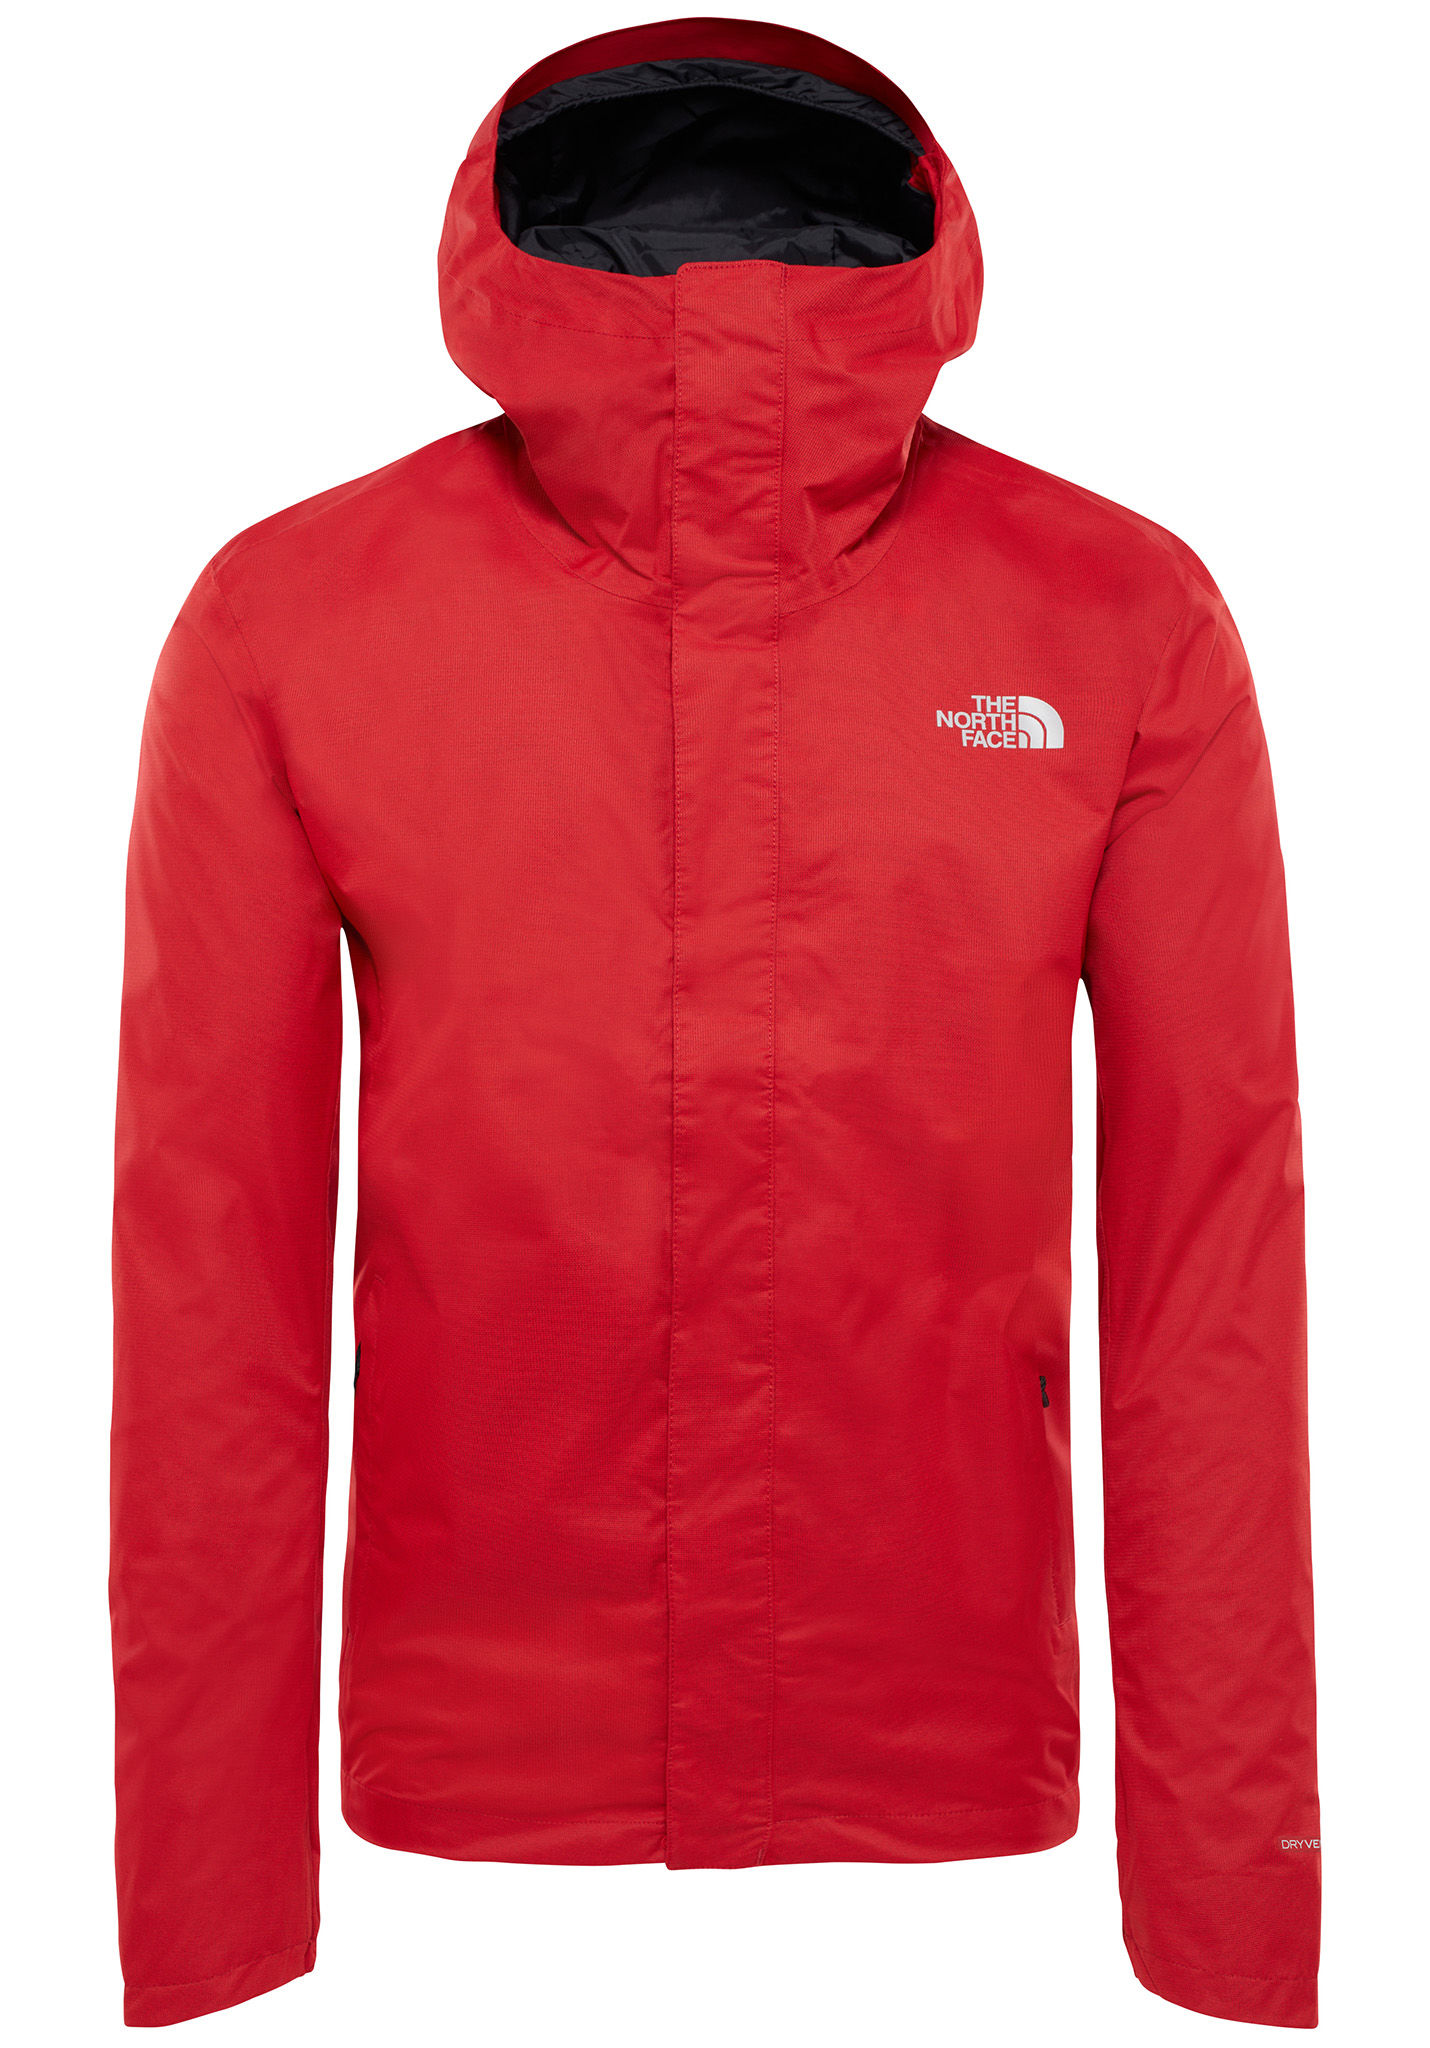 check out 5b337 21db8 THE NORTH FACE Tanken-In - Jacke für Herren - Rot